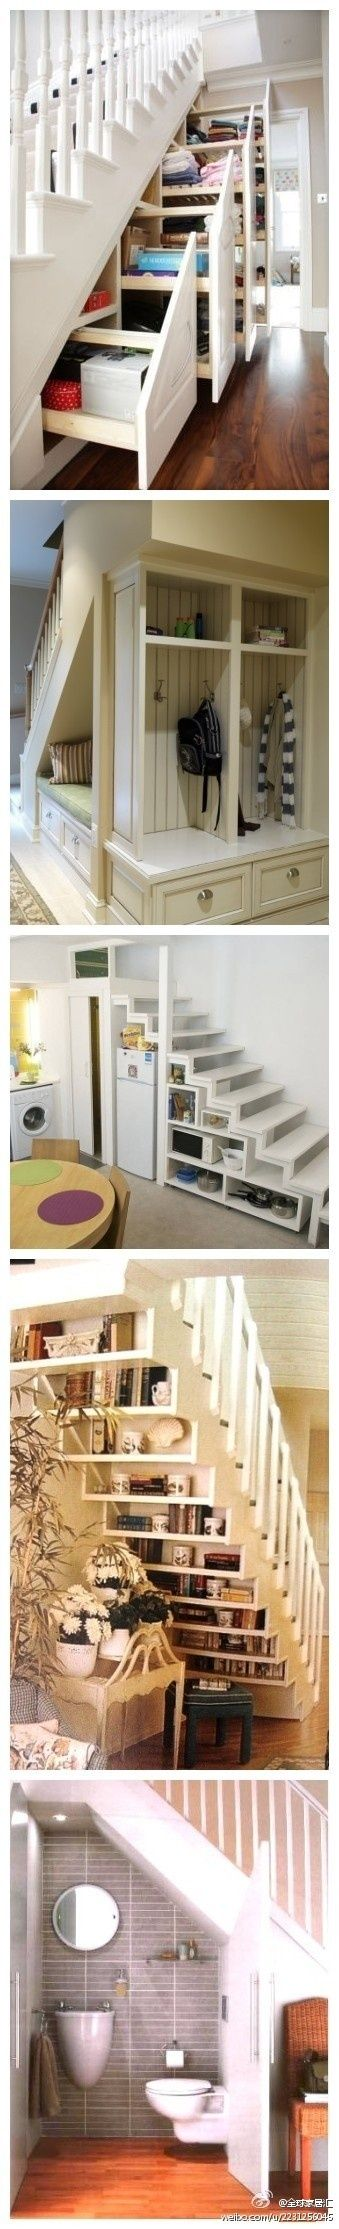 Great ideas for saving space using the room under stairs!